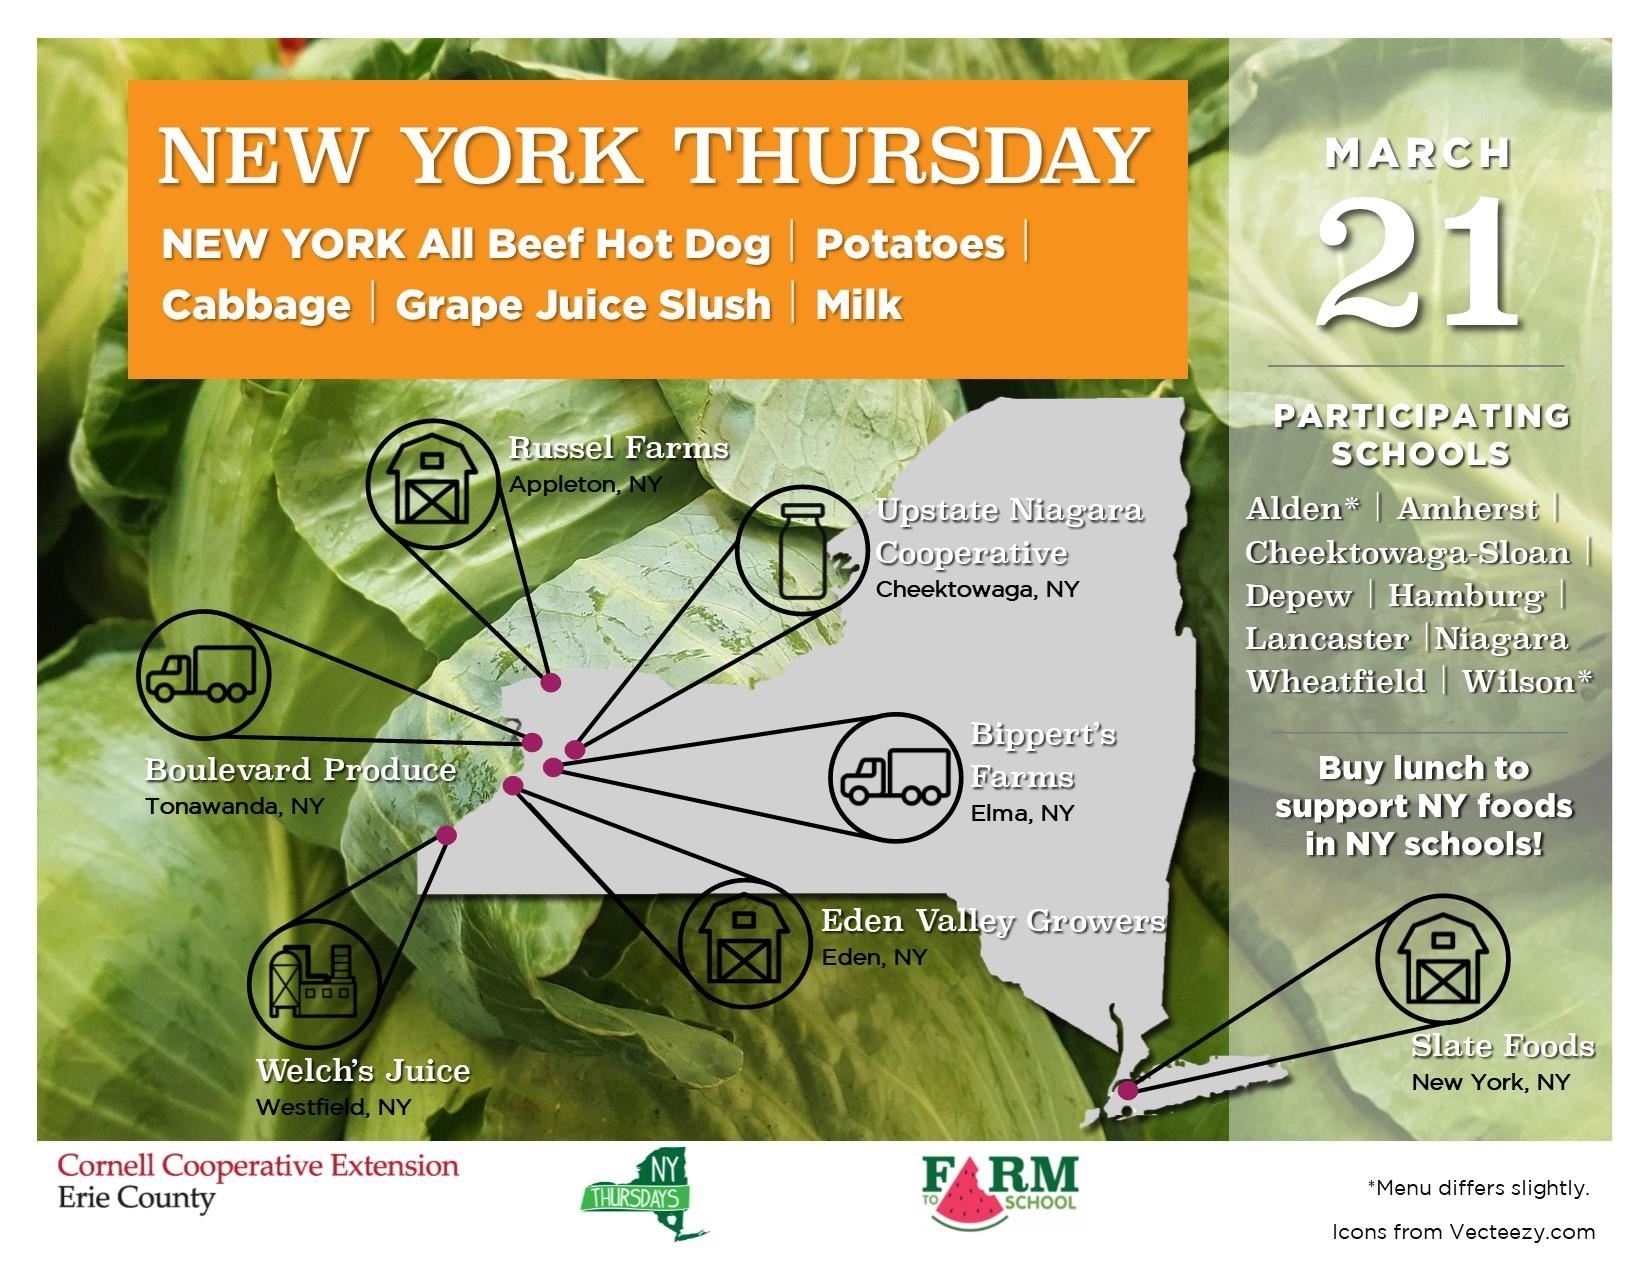 NY Thursday image